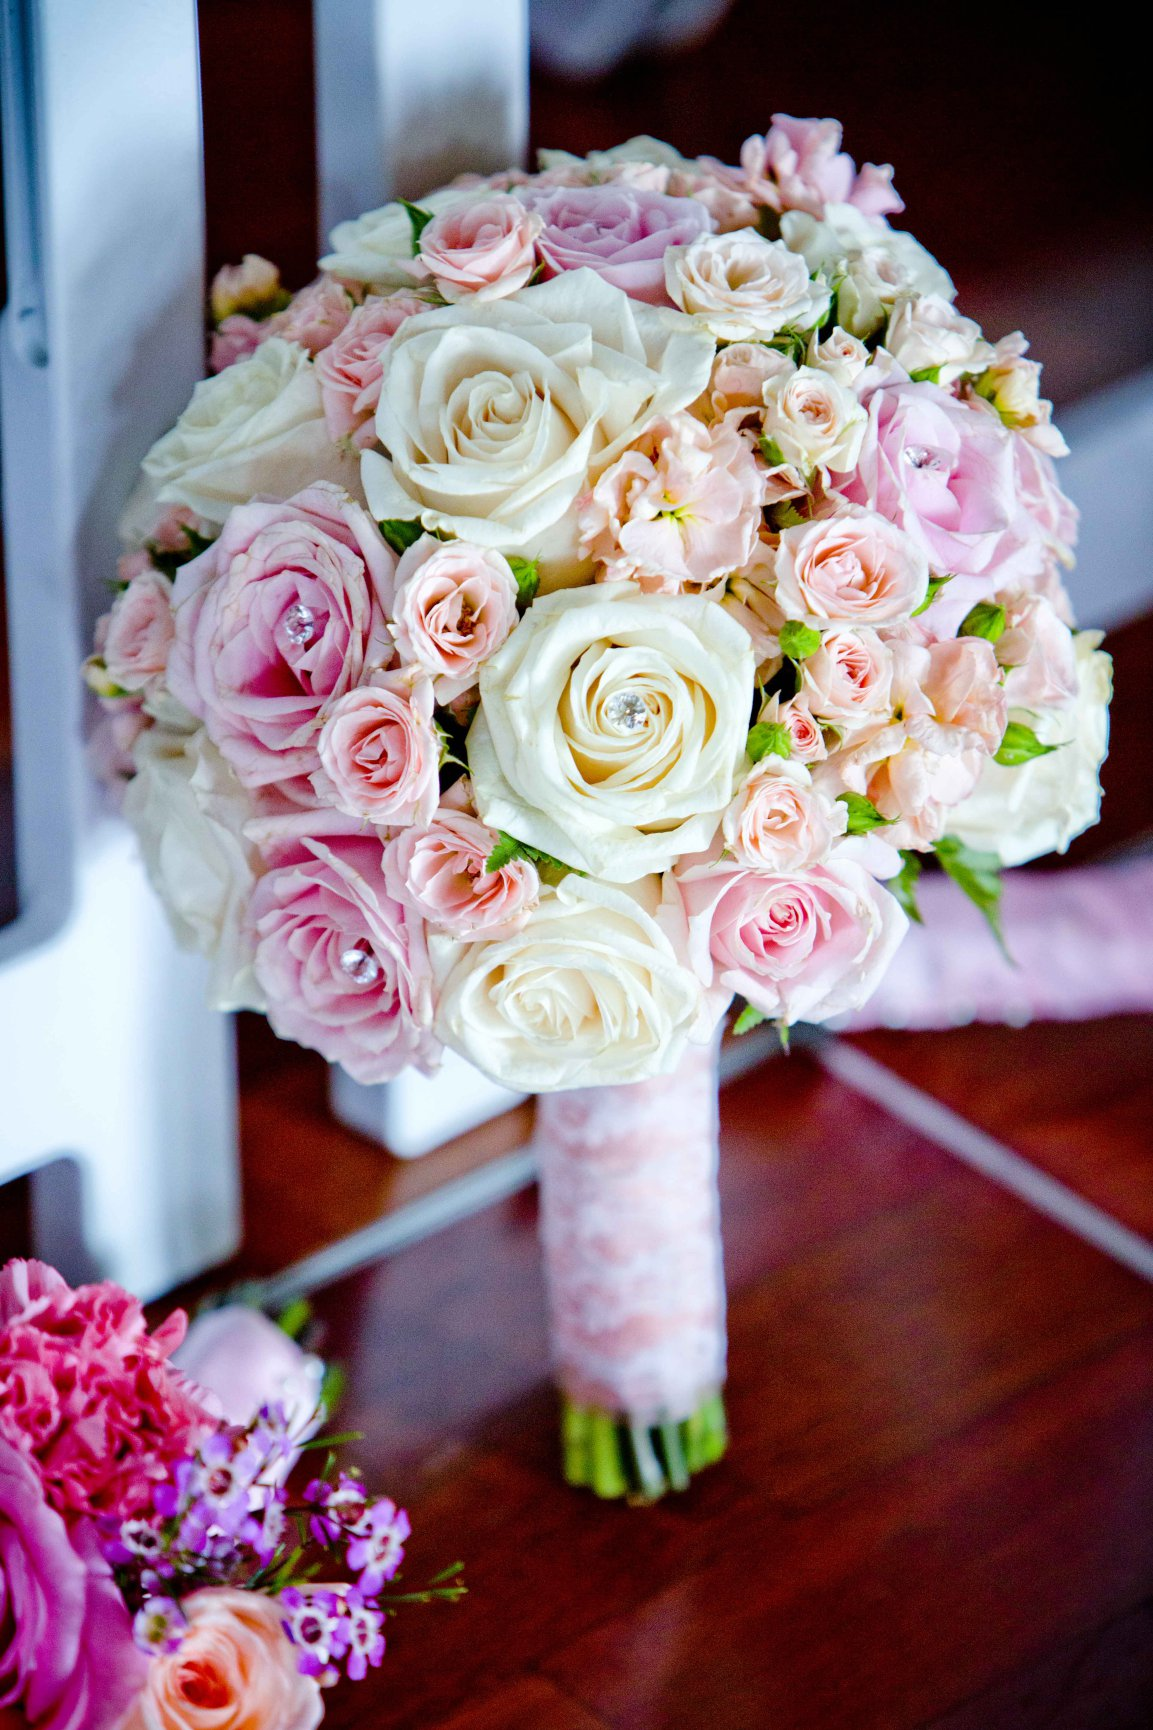 Bridal Bouquets The Latest And Greatest Brett Charles Rose